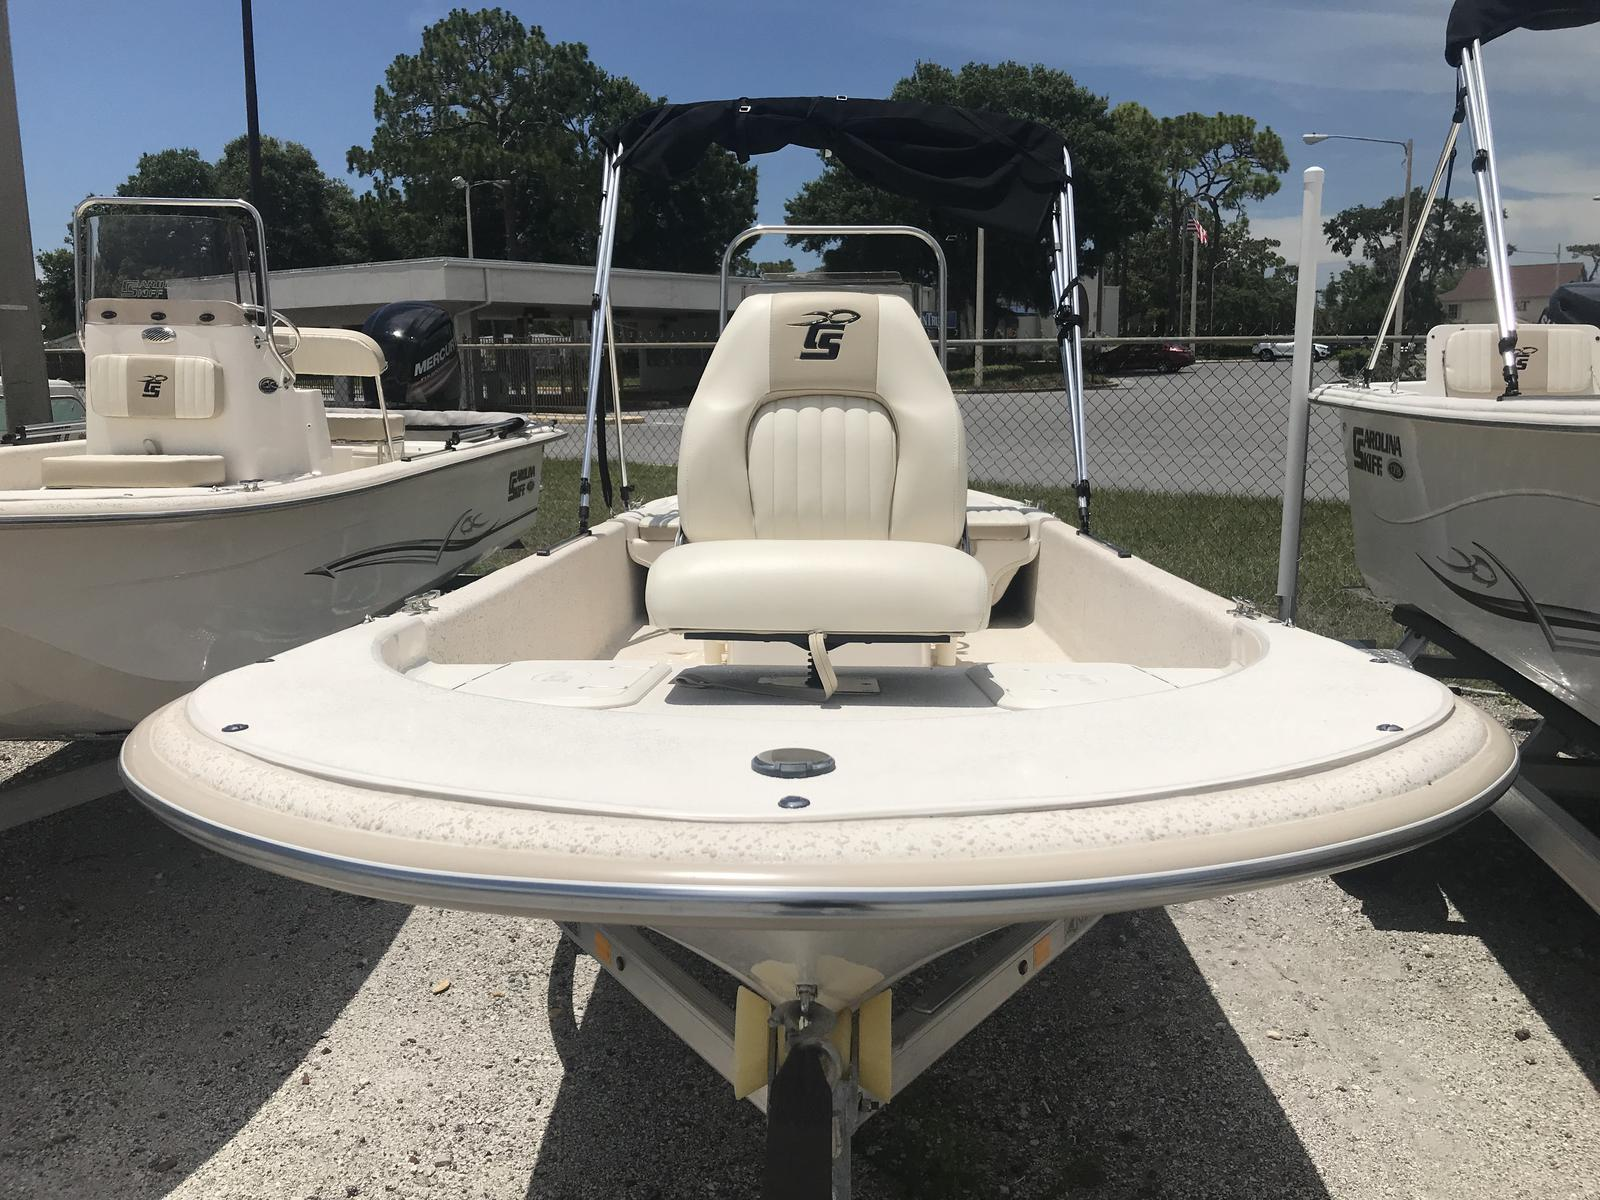 Pleasant 2018 Carolina Skiff 17 Jv Cc For Sale In Holiday Fl Sunray Onthecornerstone Fun Painted Chair Ideas Images Onthecornerstoneorg